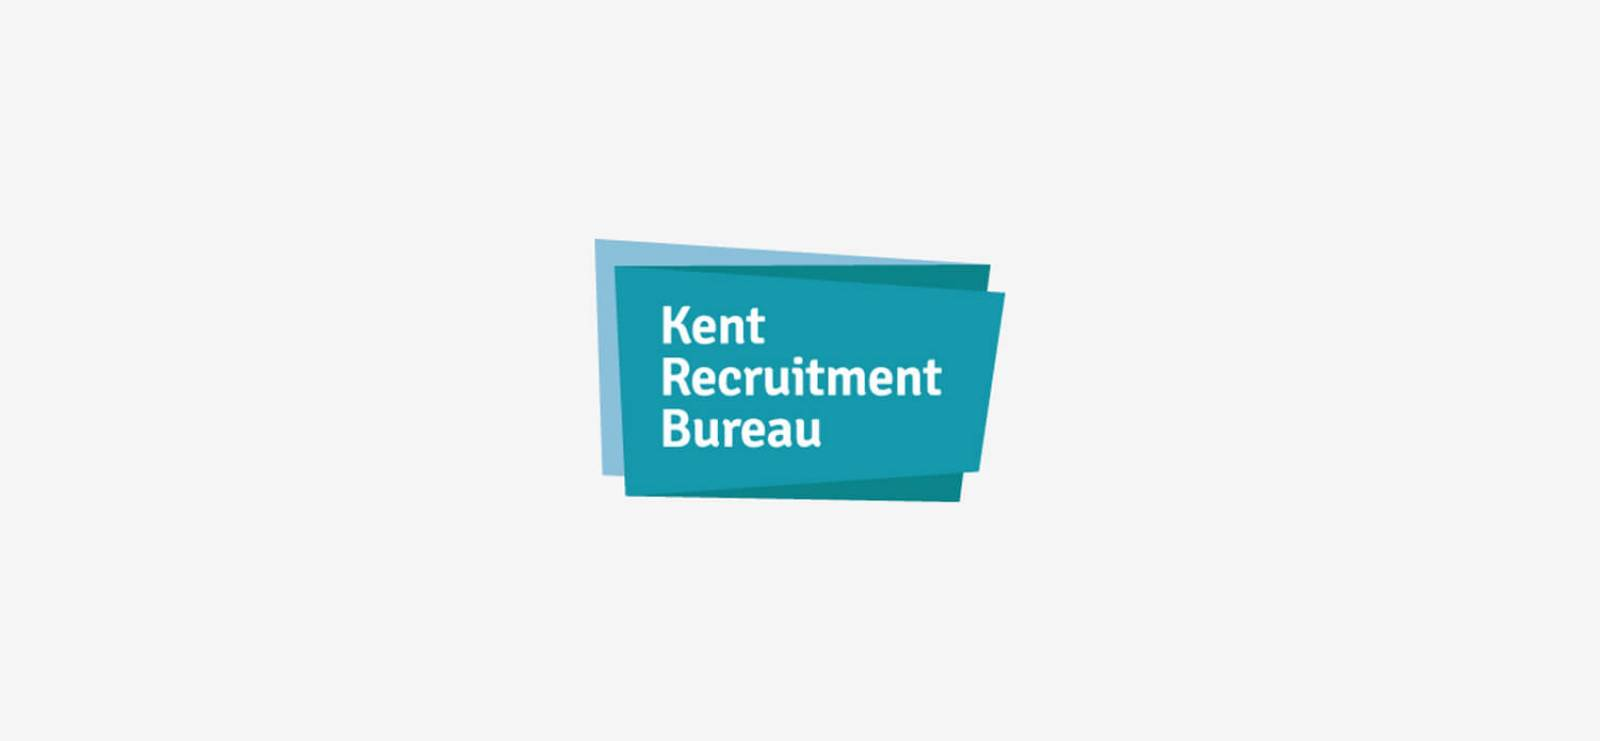 KRB-logo-corporate-identity-agency-graphic-design-canterbury.jpg